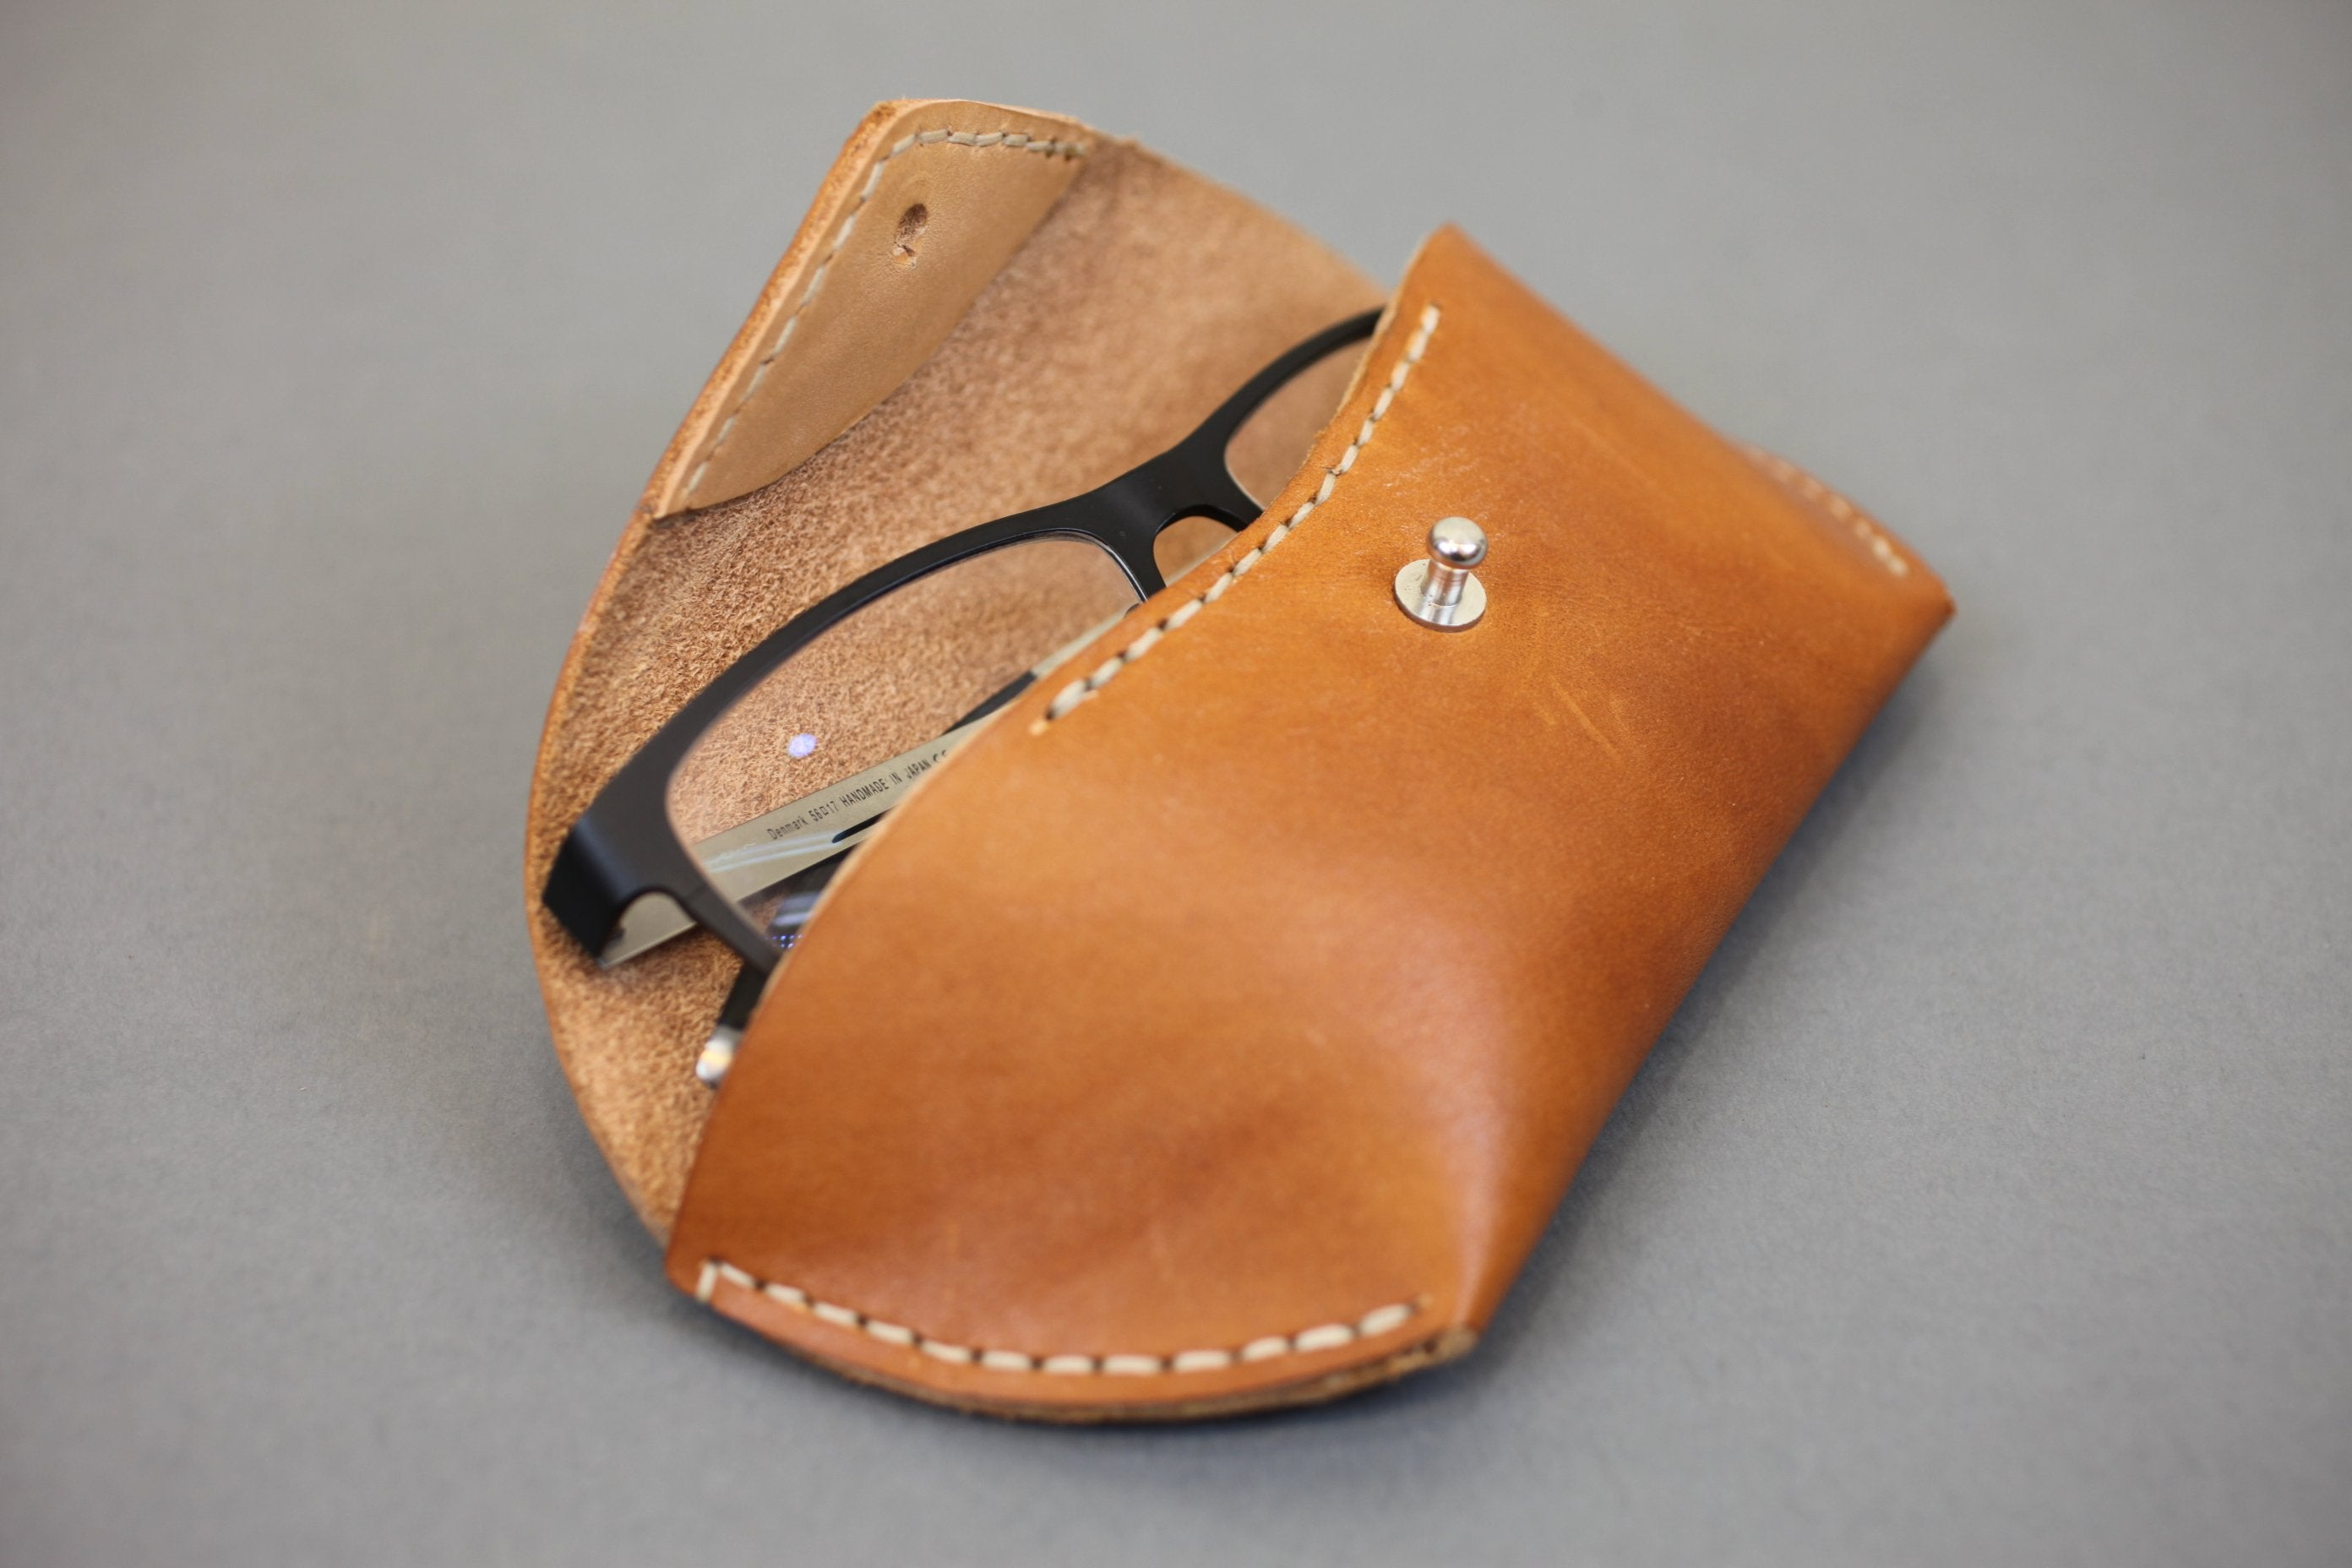 Ray Ban Case Hommage No 1 - Spectacles Case - Handmade Leather Case - Glasses Case